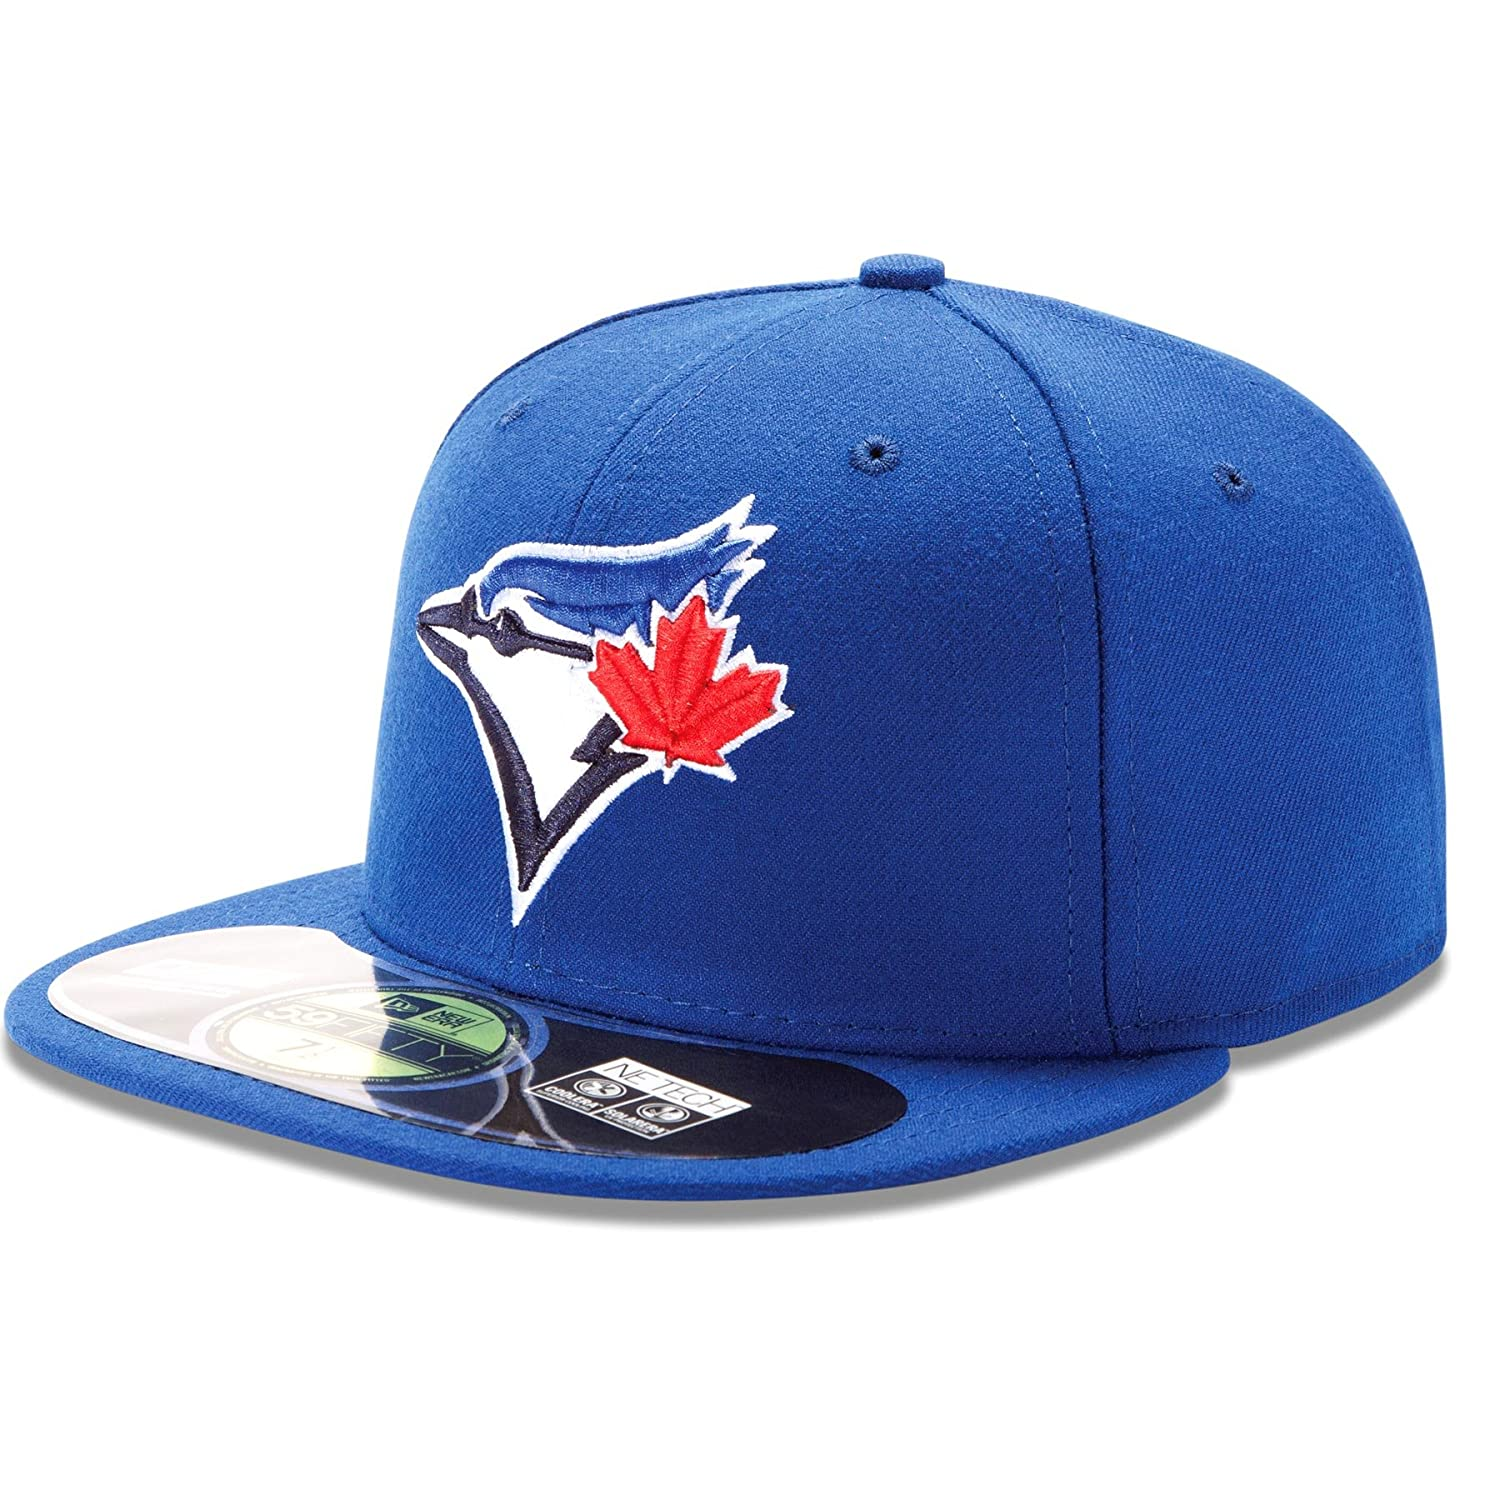 buy online a0be1 96a1c Toronto Blue Jays 59Fifty Authentic Fitted Performance Game MLB Baseball Cap  - Size 7, Baseball Caps - Amazon Canada